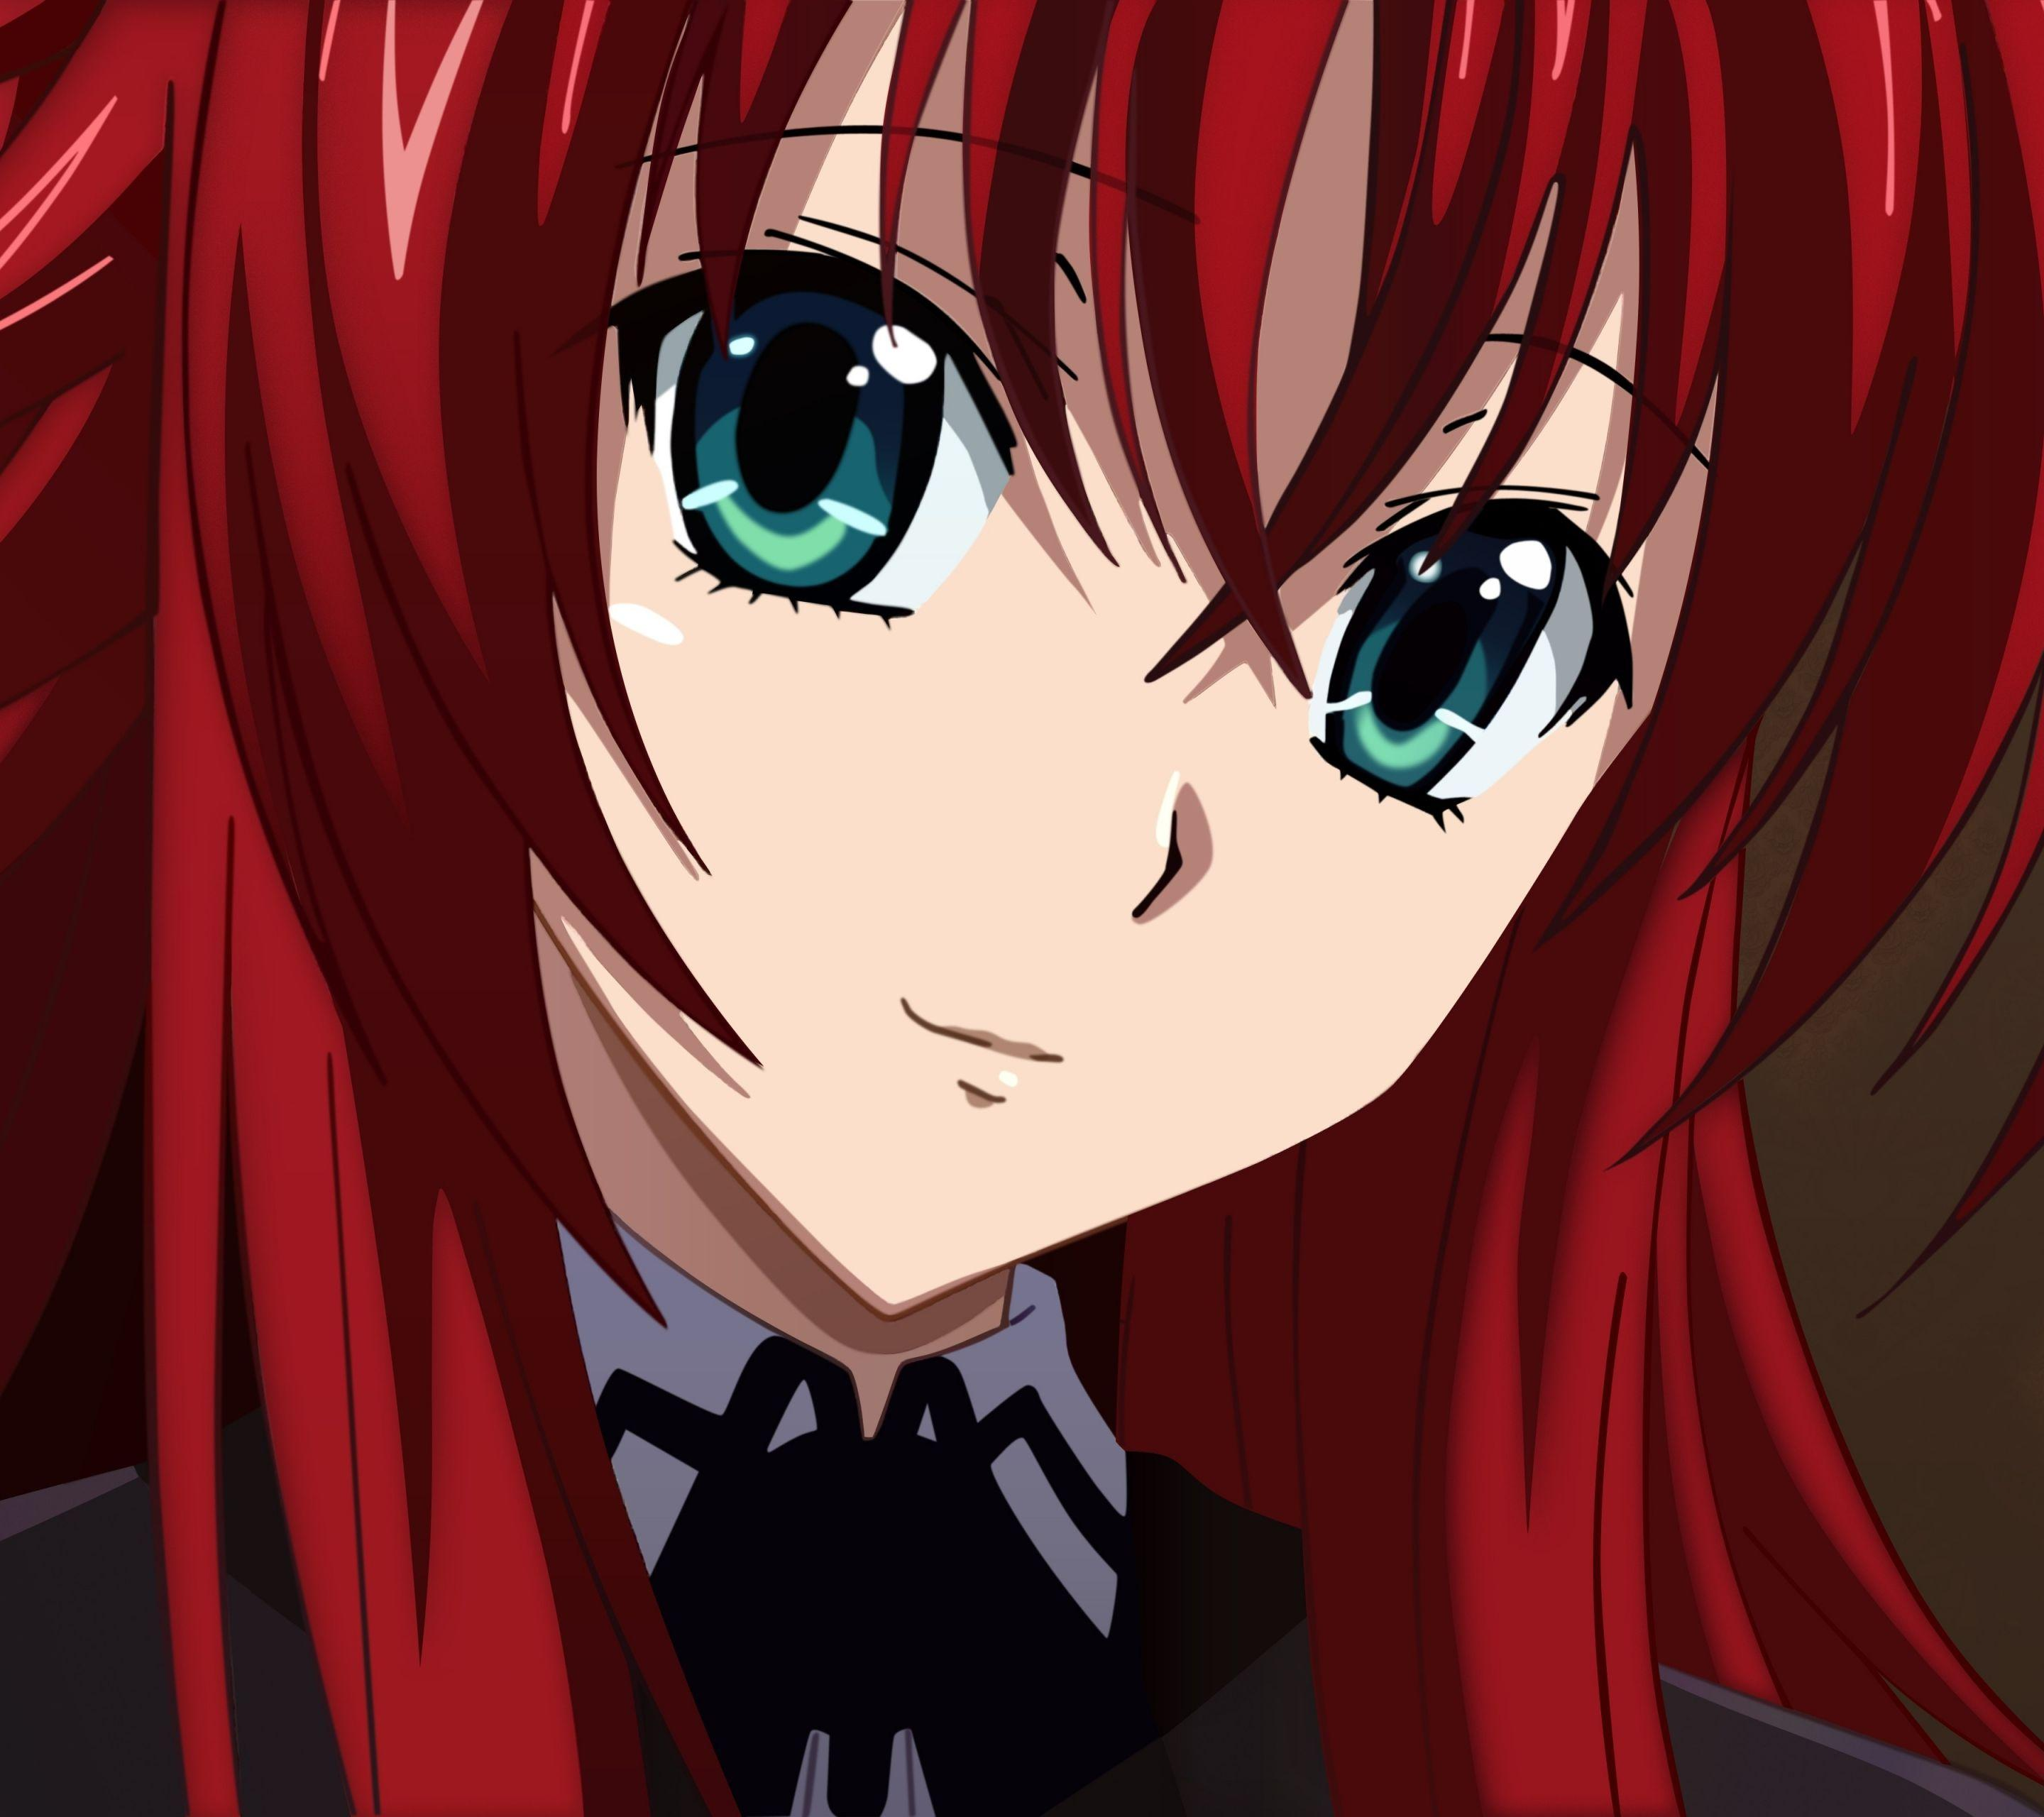 2880x2560 - Anime/High School DxD - Wallpaper ID: 609091